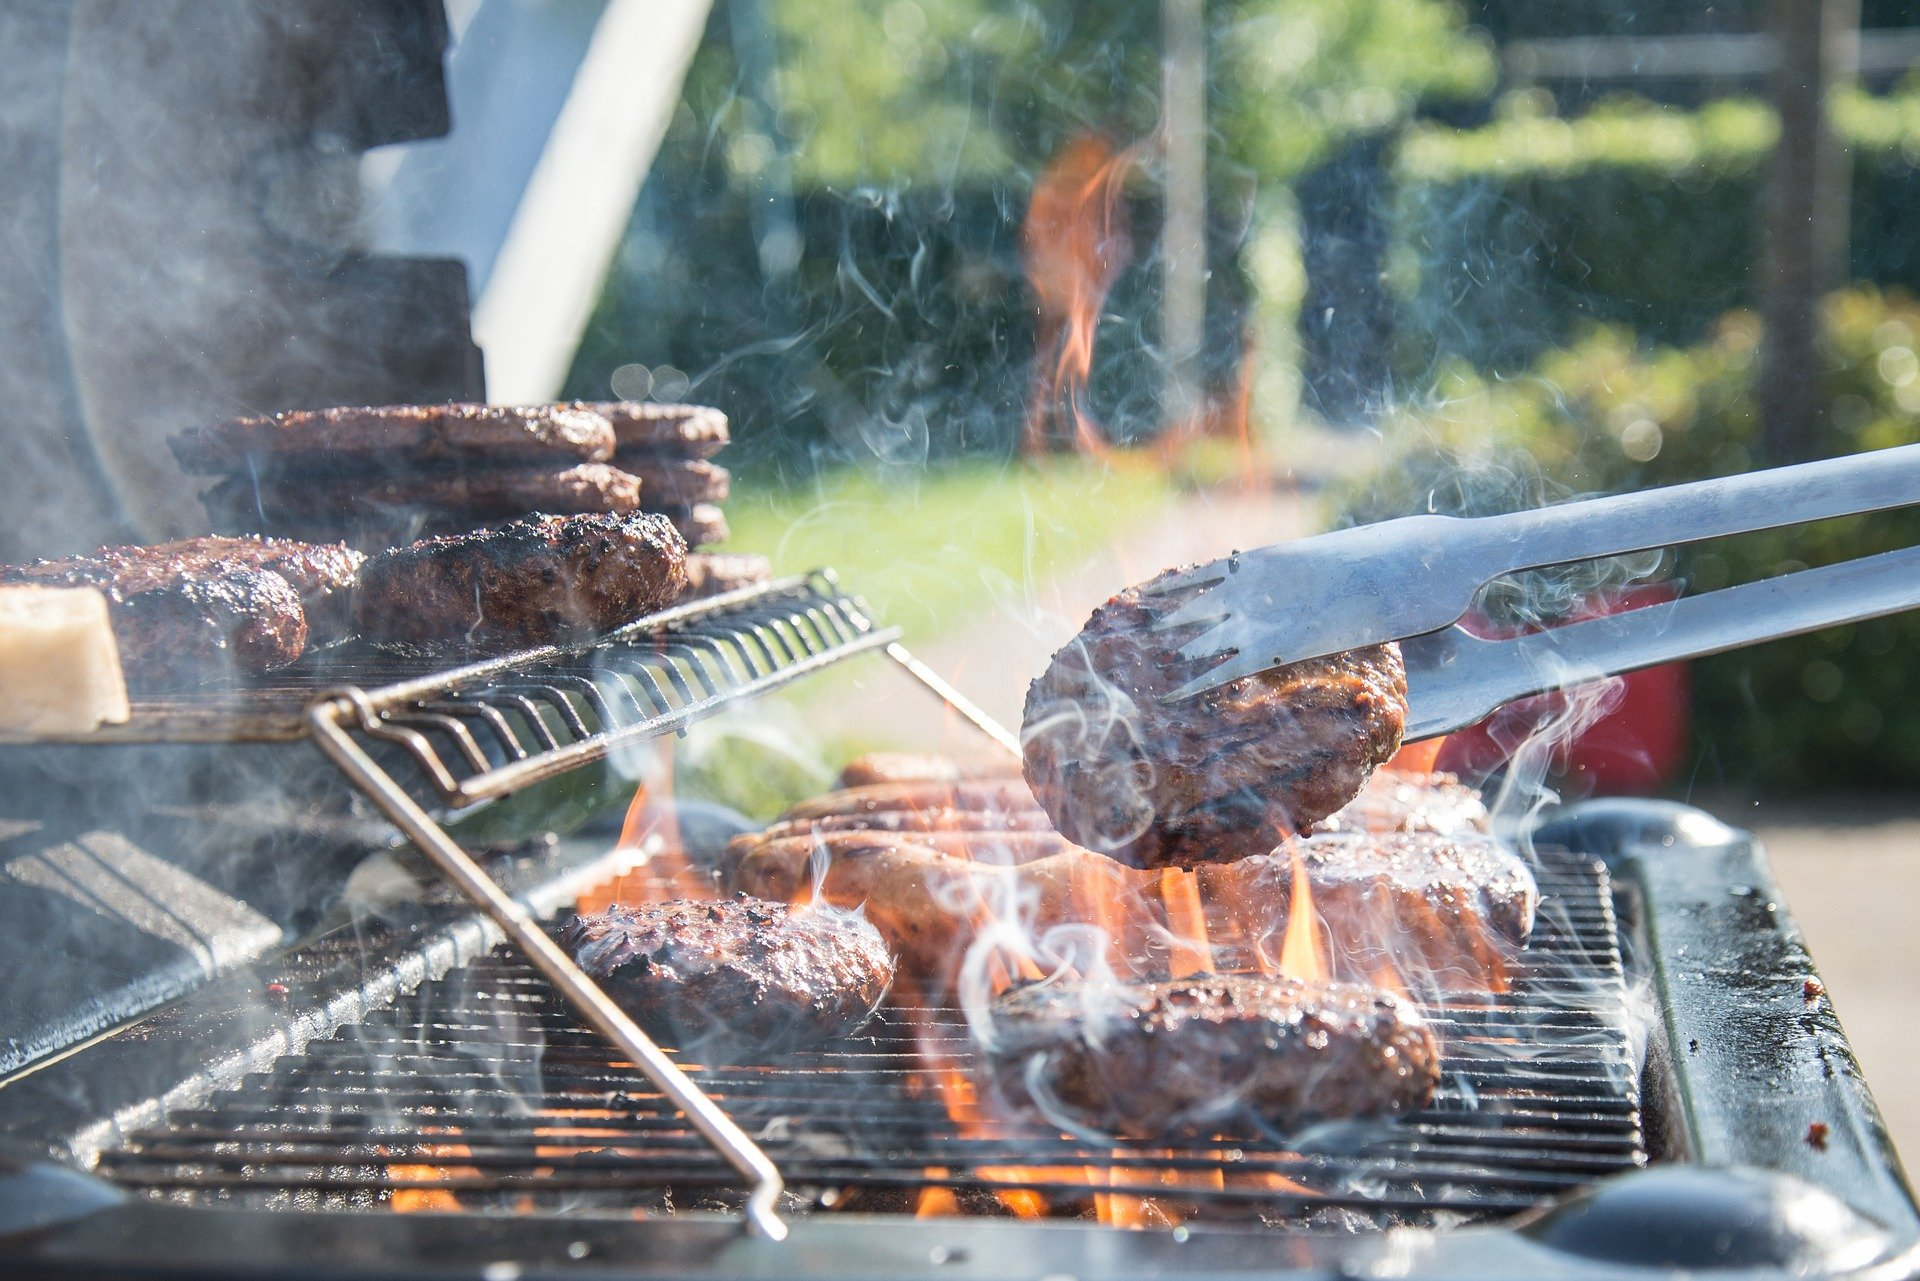 Want to learn how to grill like a pro? 9 tips to up your grilling game!